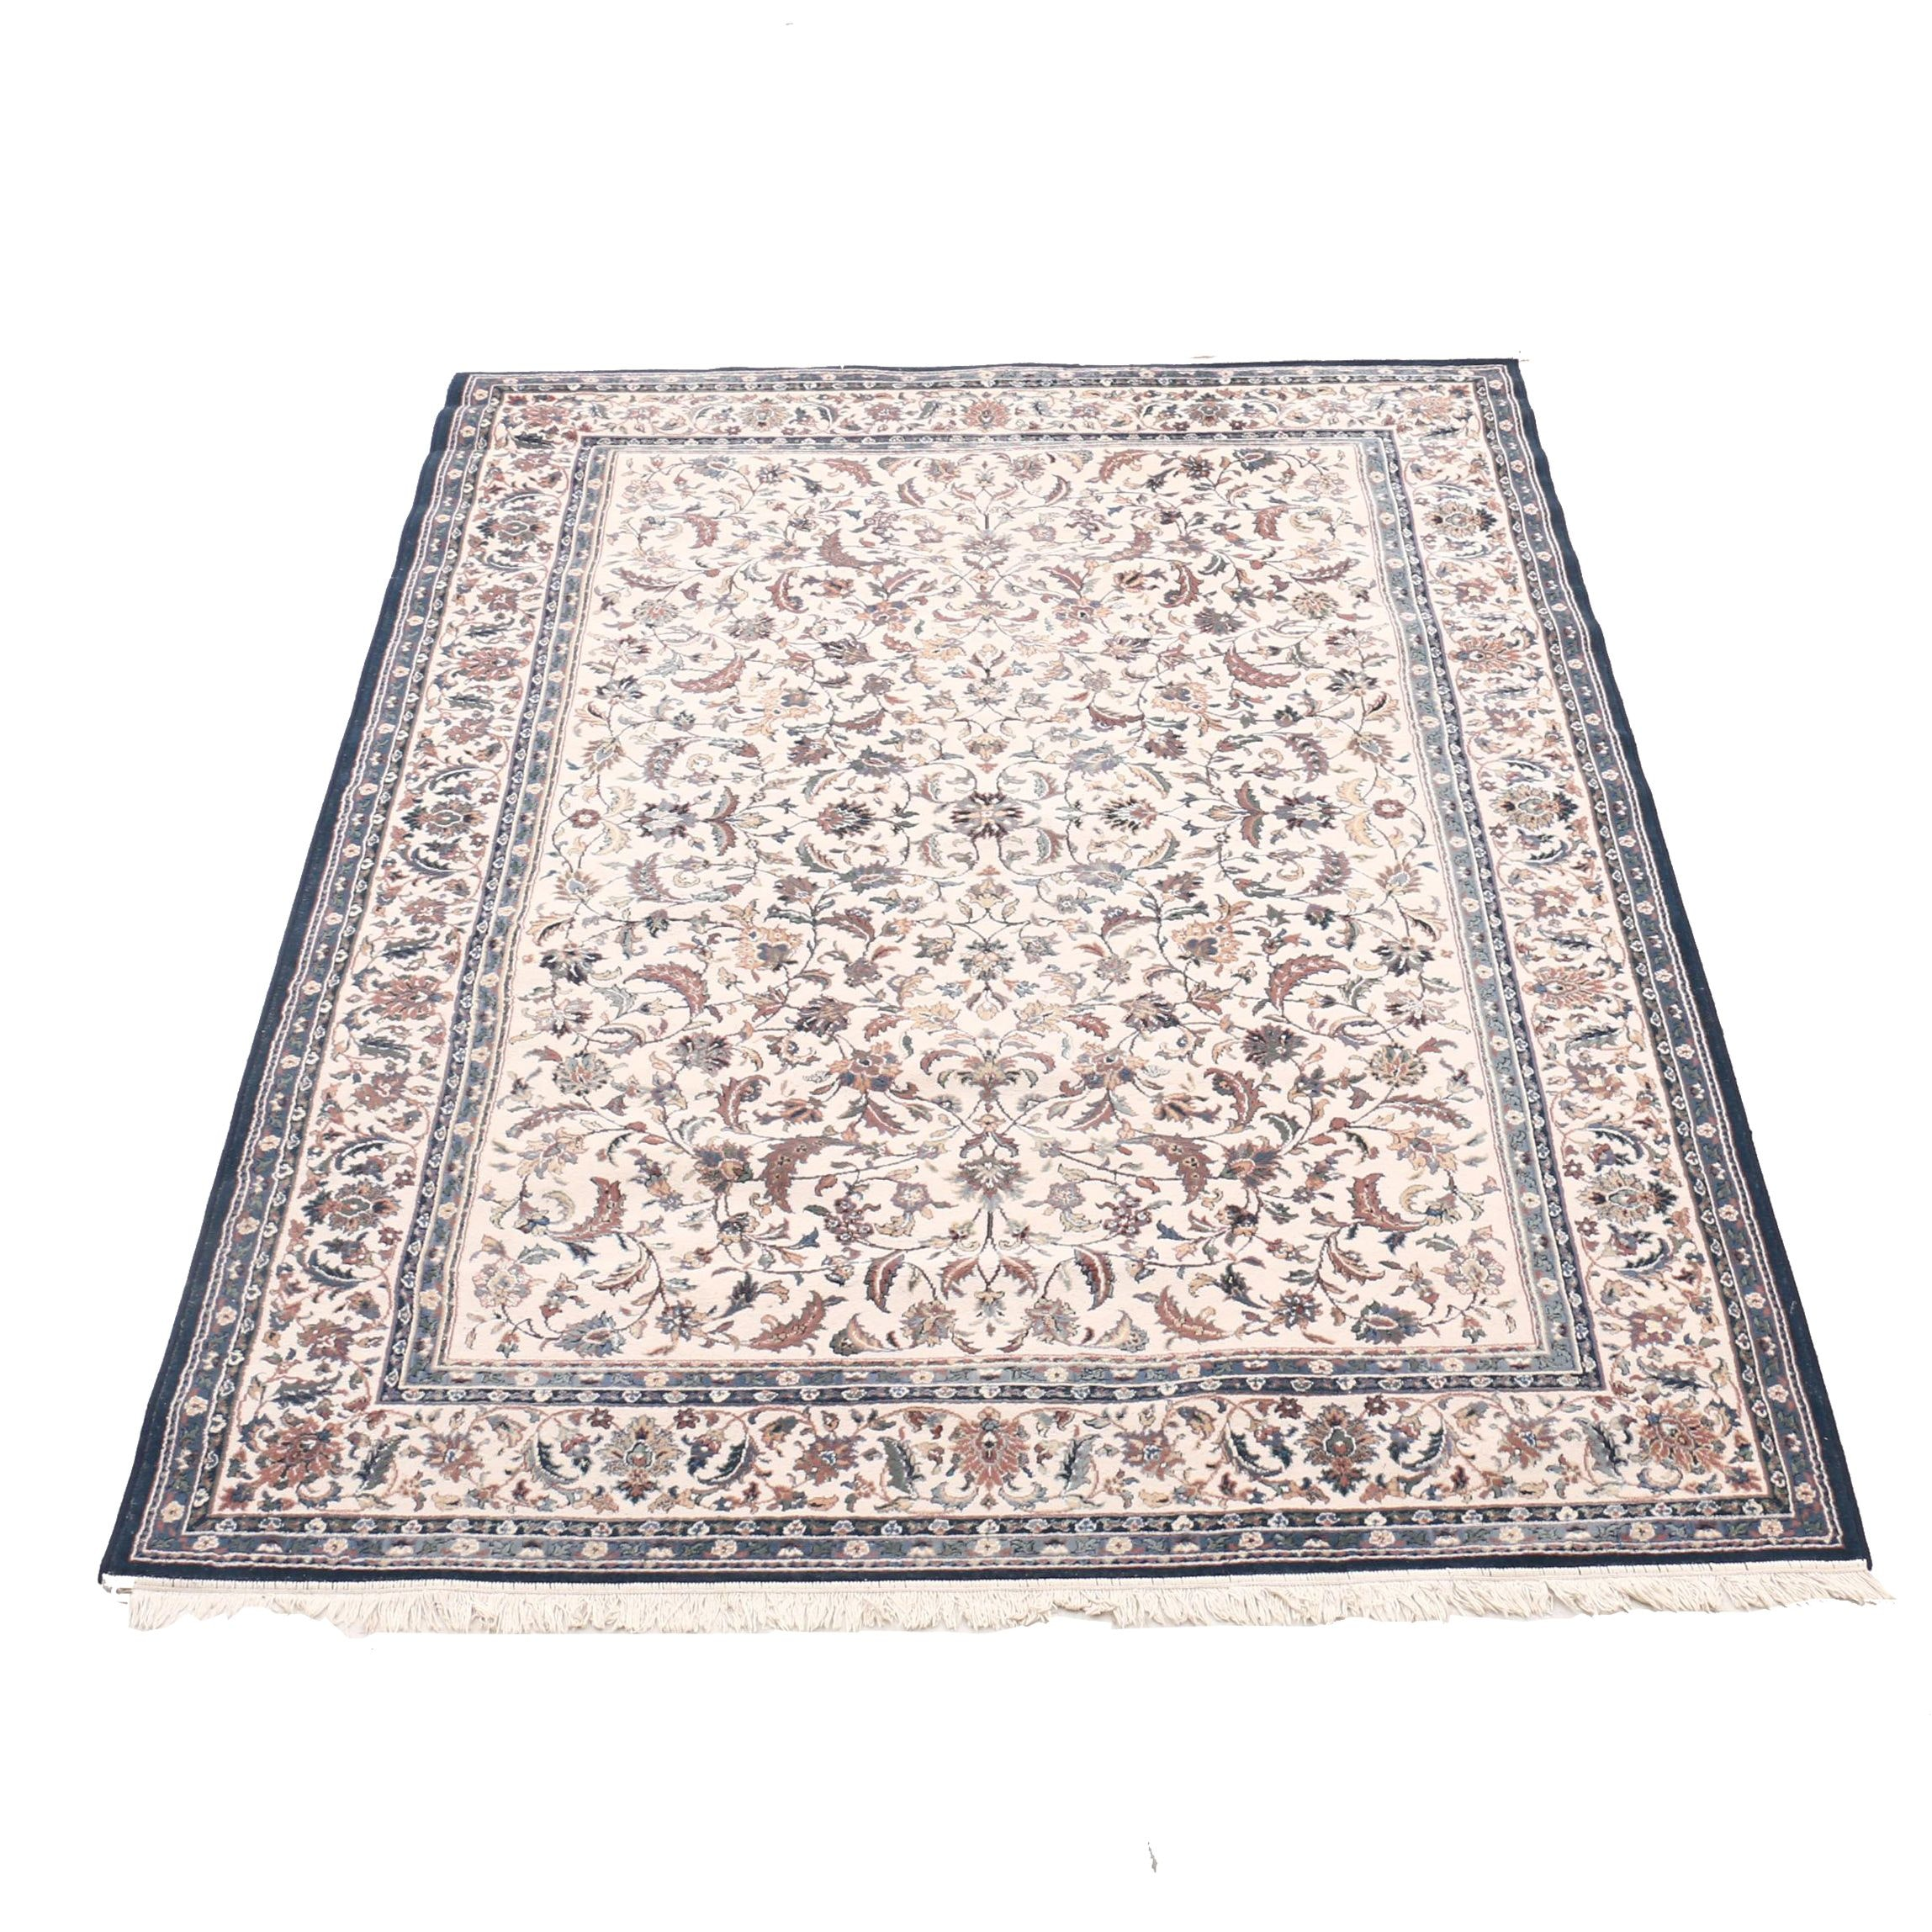 Machine-Made Persian Style Wool Floral Area Rug